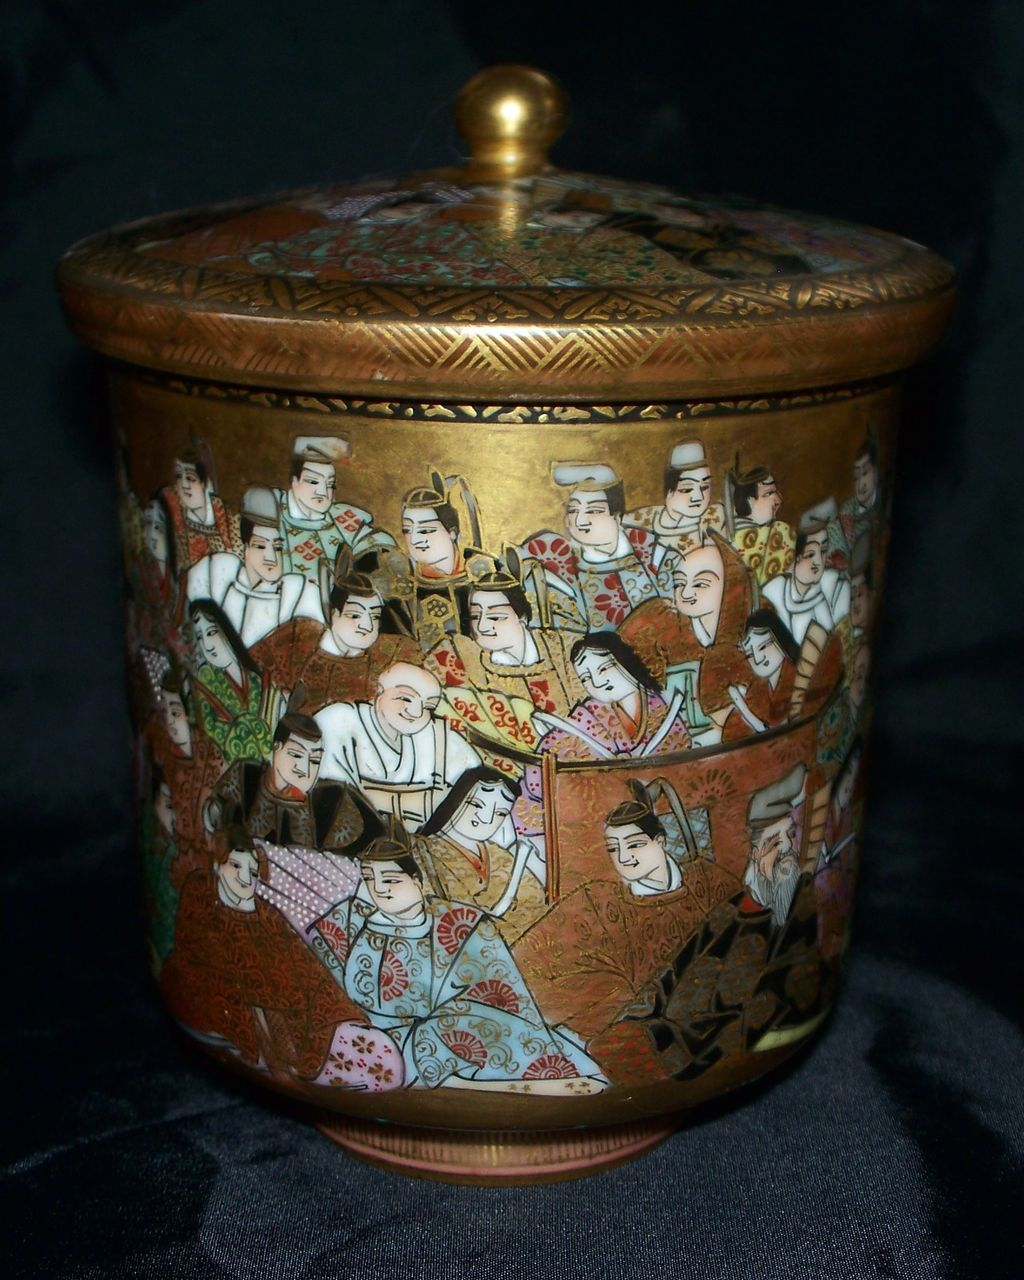 Exquisite Japanese Kutani Satsuma Covered Jar with 100 Men & Women  Meiji